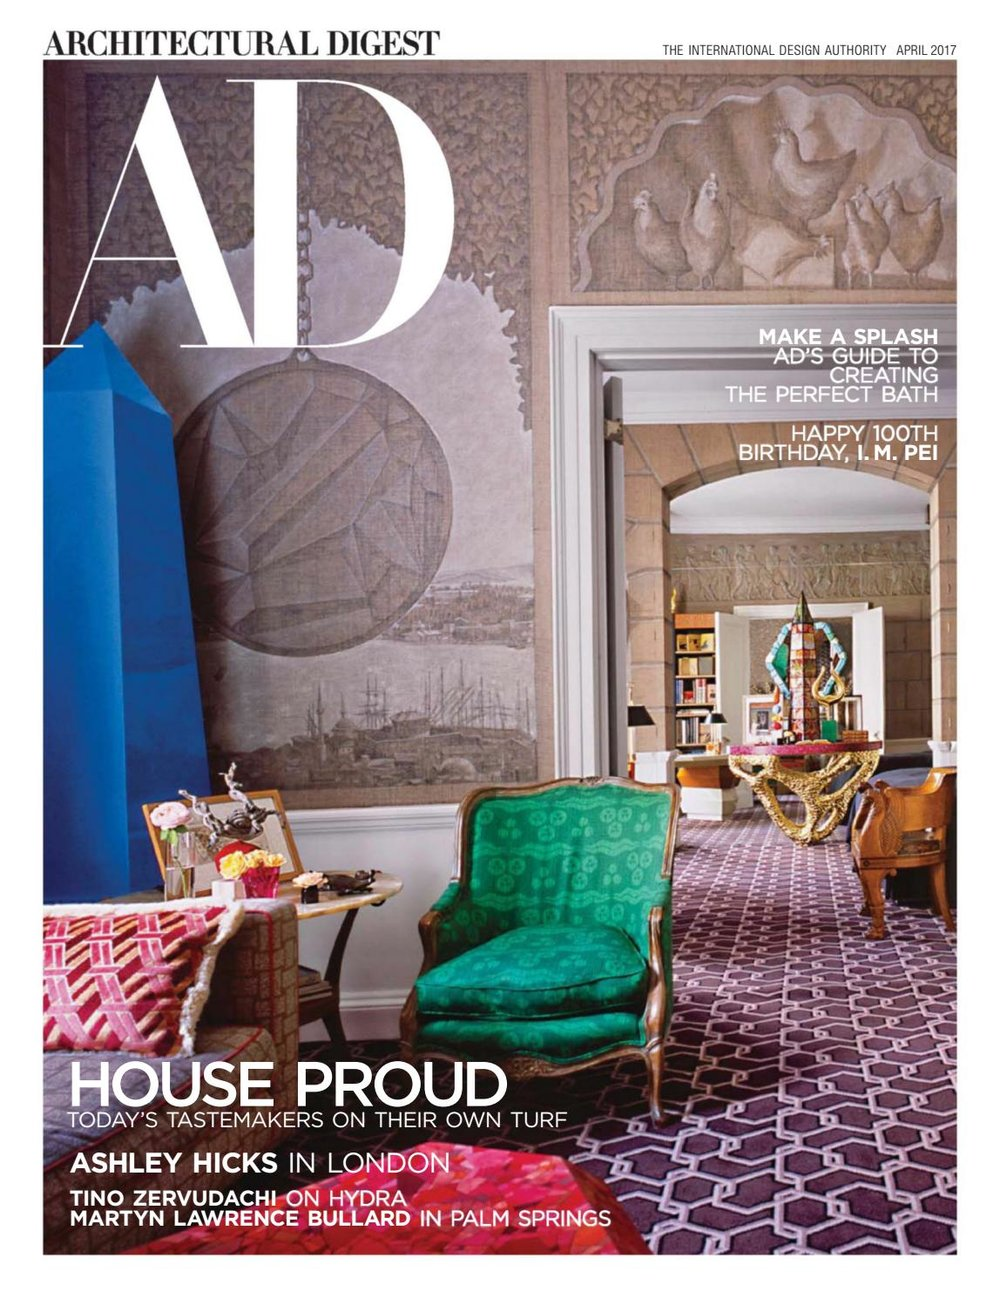 ARCHITECTURAL DIGEST April 2017 - United States